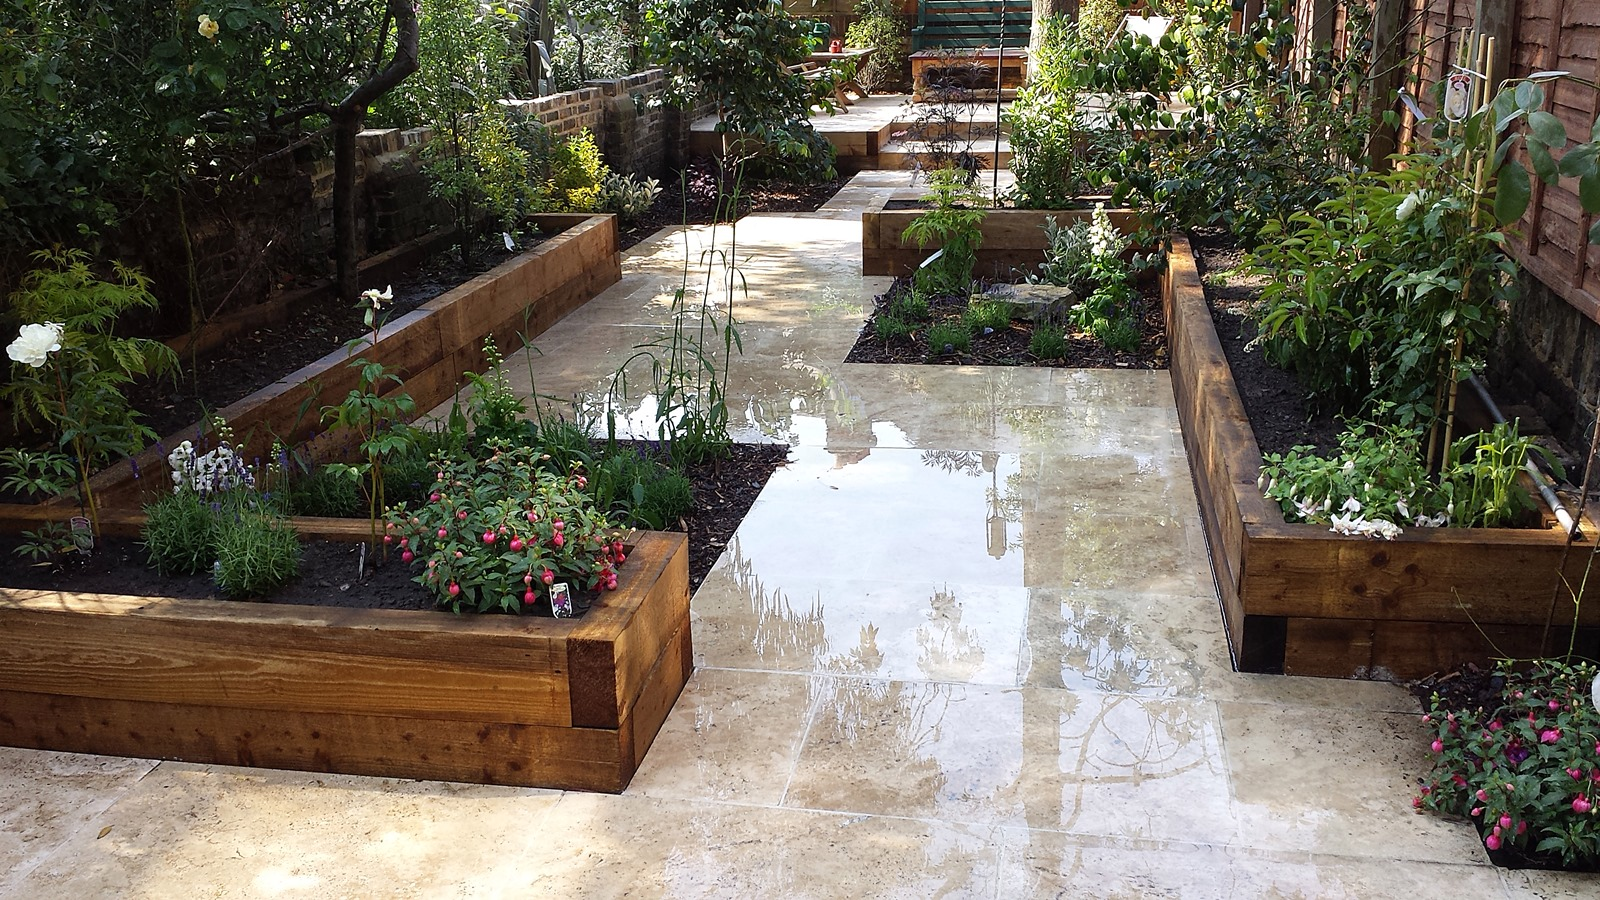 Travertine paving patio modern garden design landscaping for Contemporary garden designs and ideas